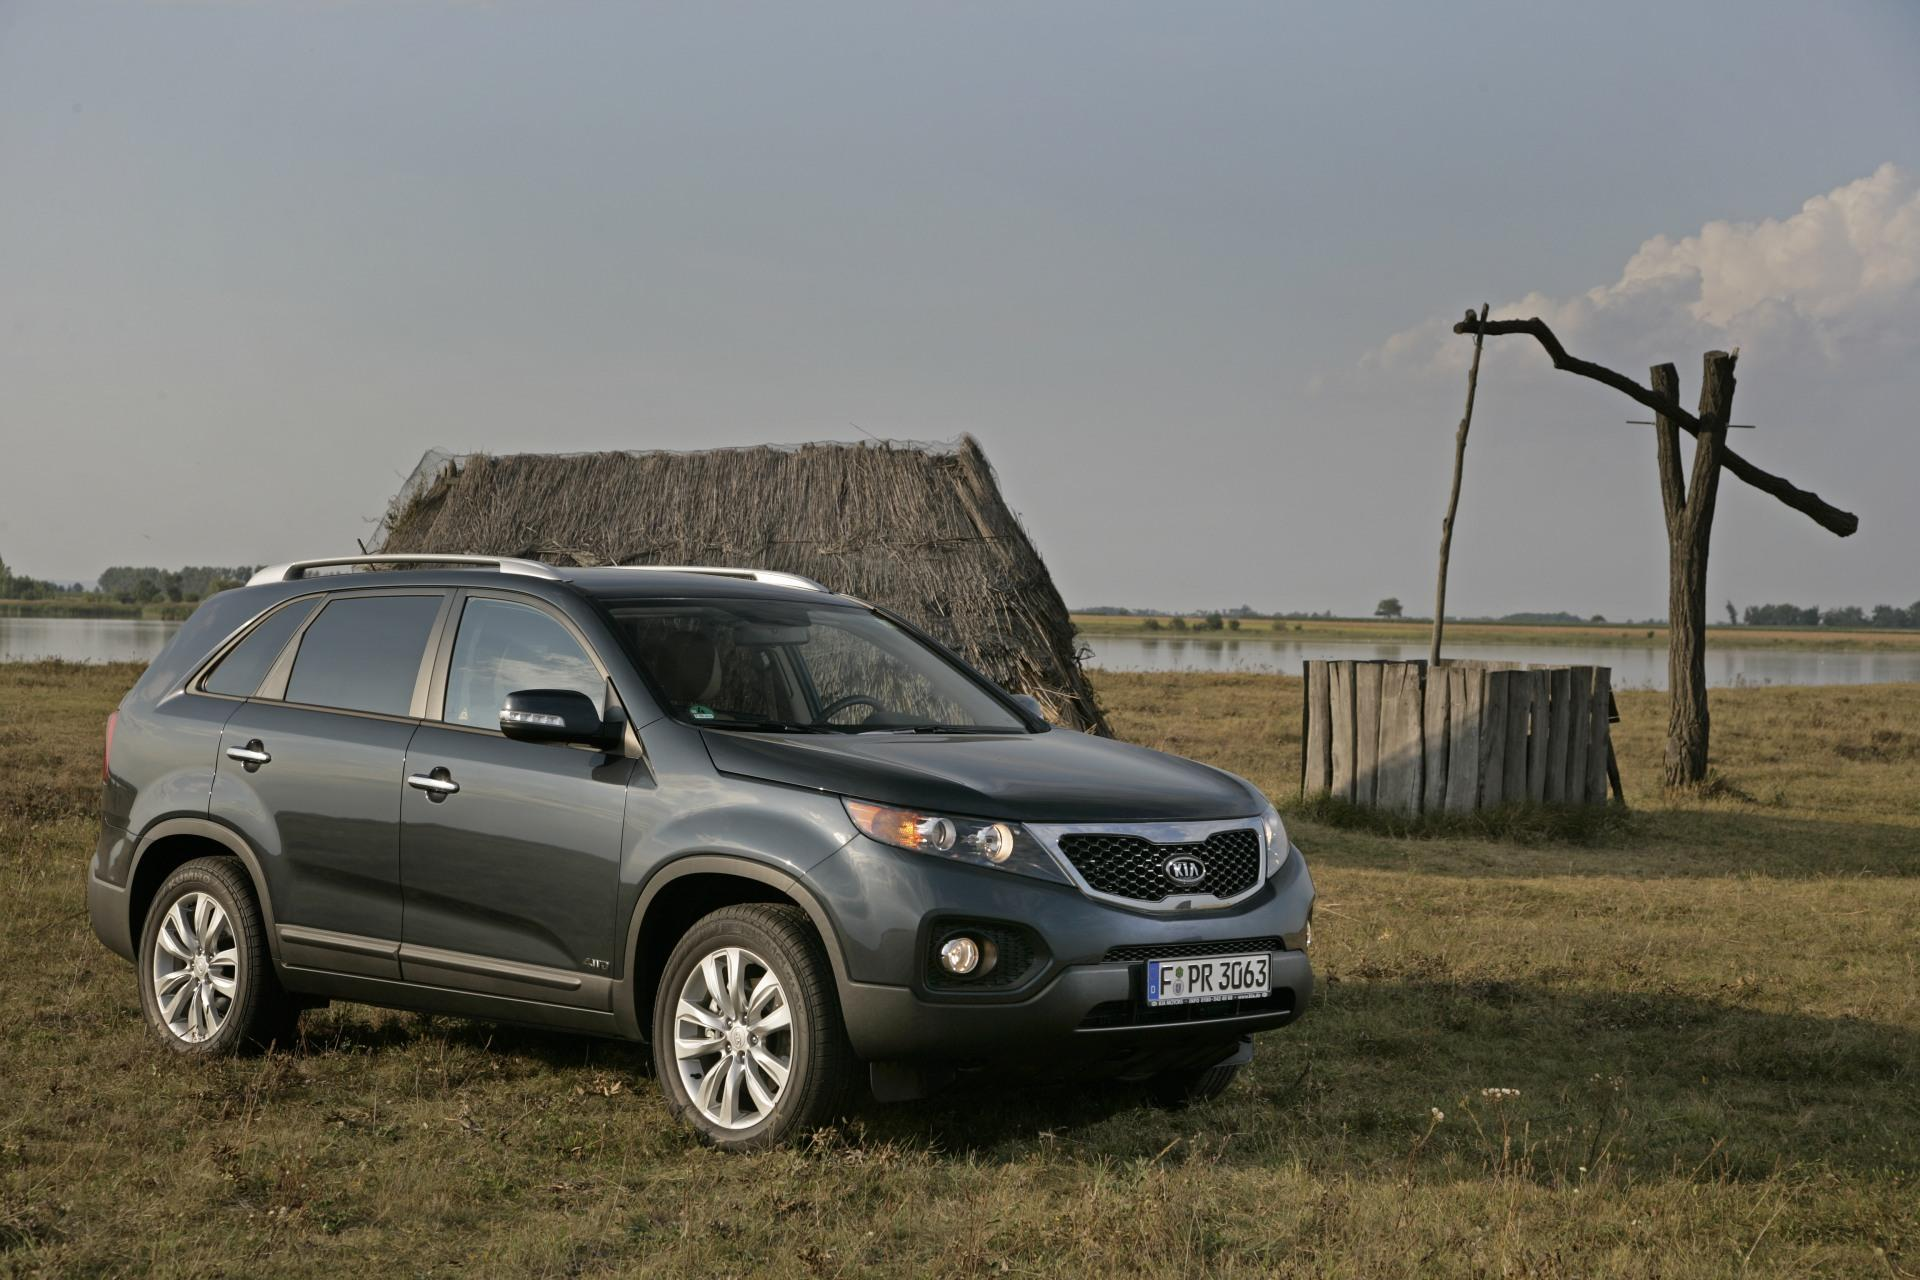 2010 Kia Sorento Technical Specifications And Data Engine Dimensions And Mechanical Details